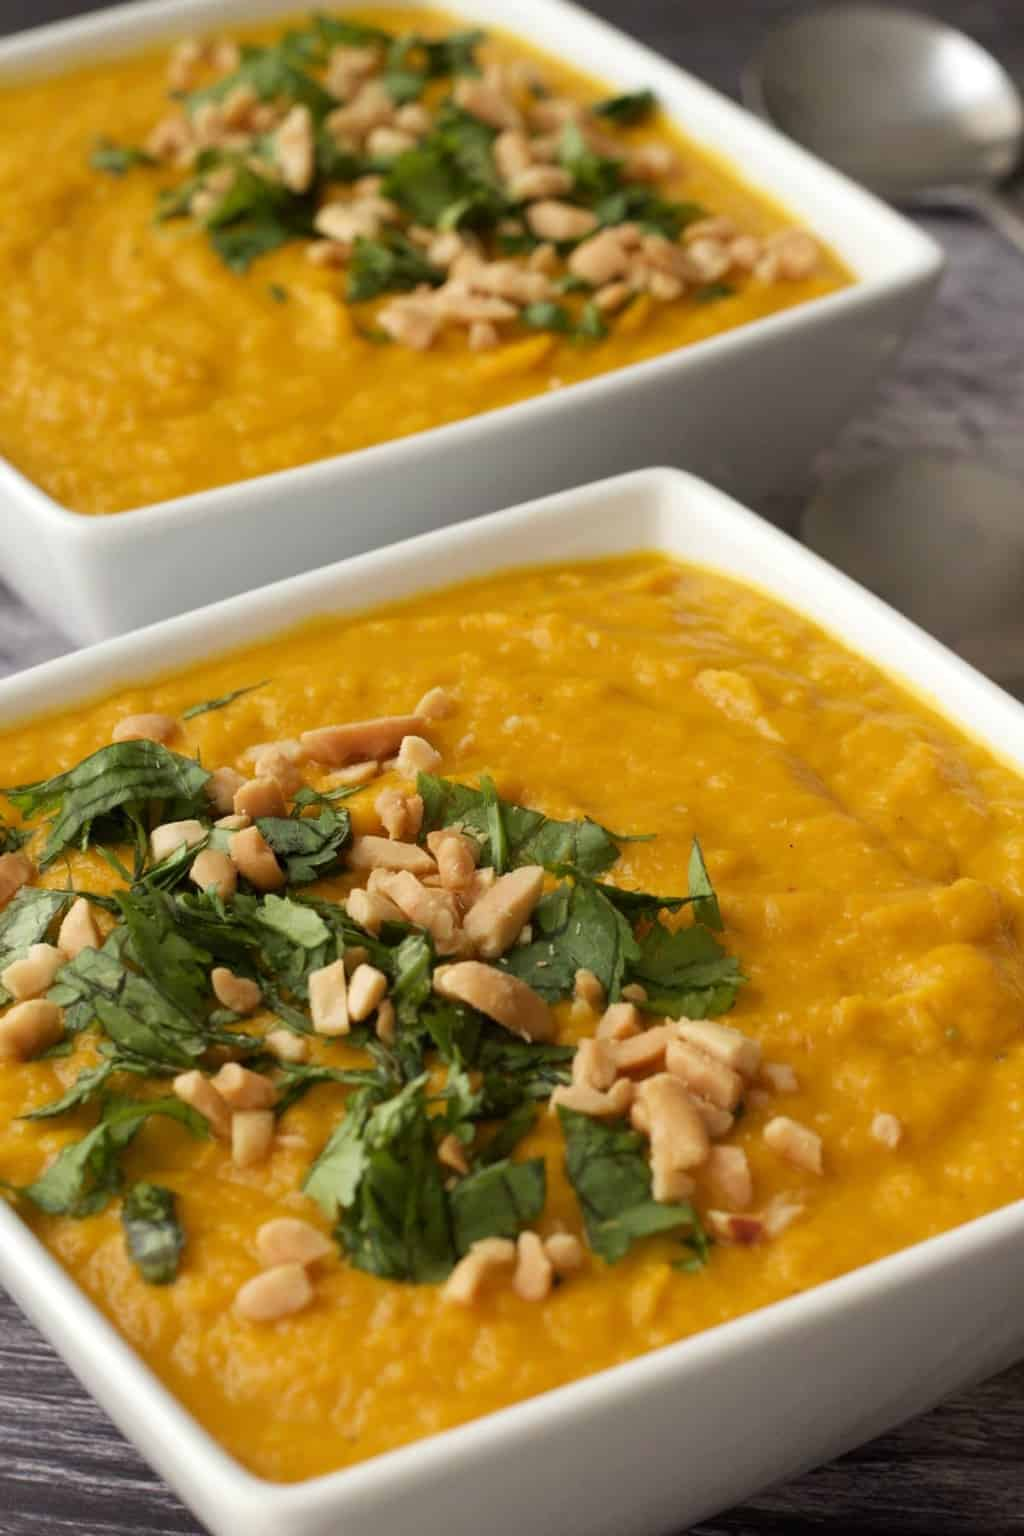 Vegan carrot soup topped with chopped cilantro and peanuts in white bowls.